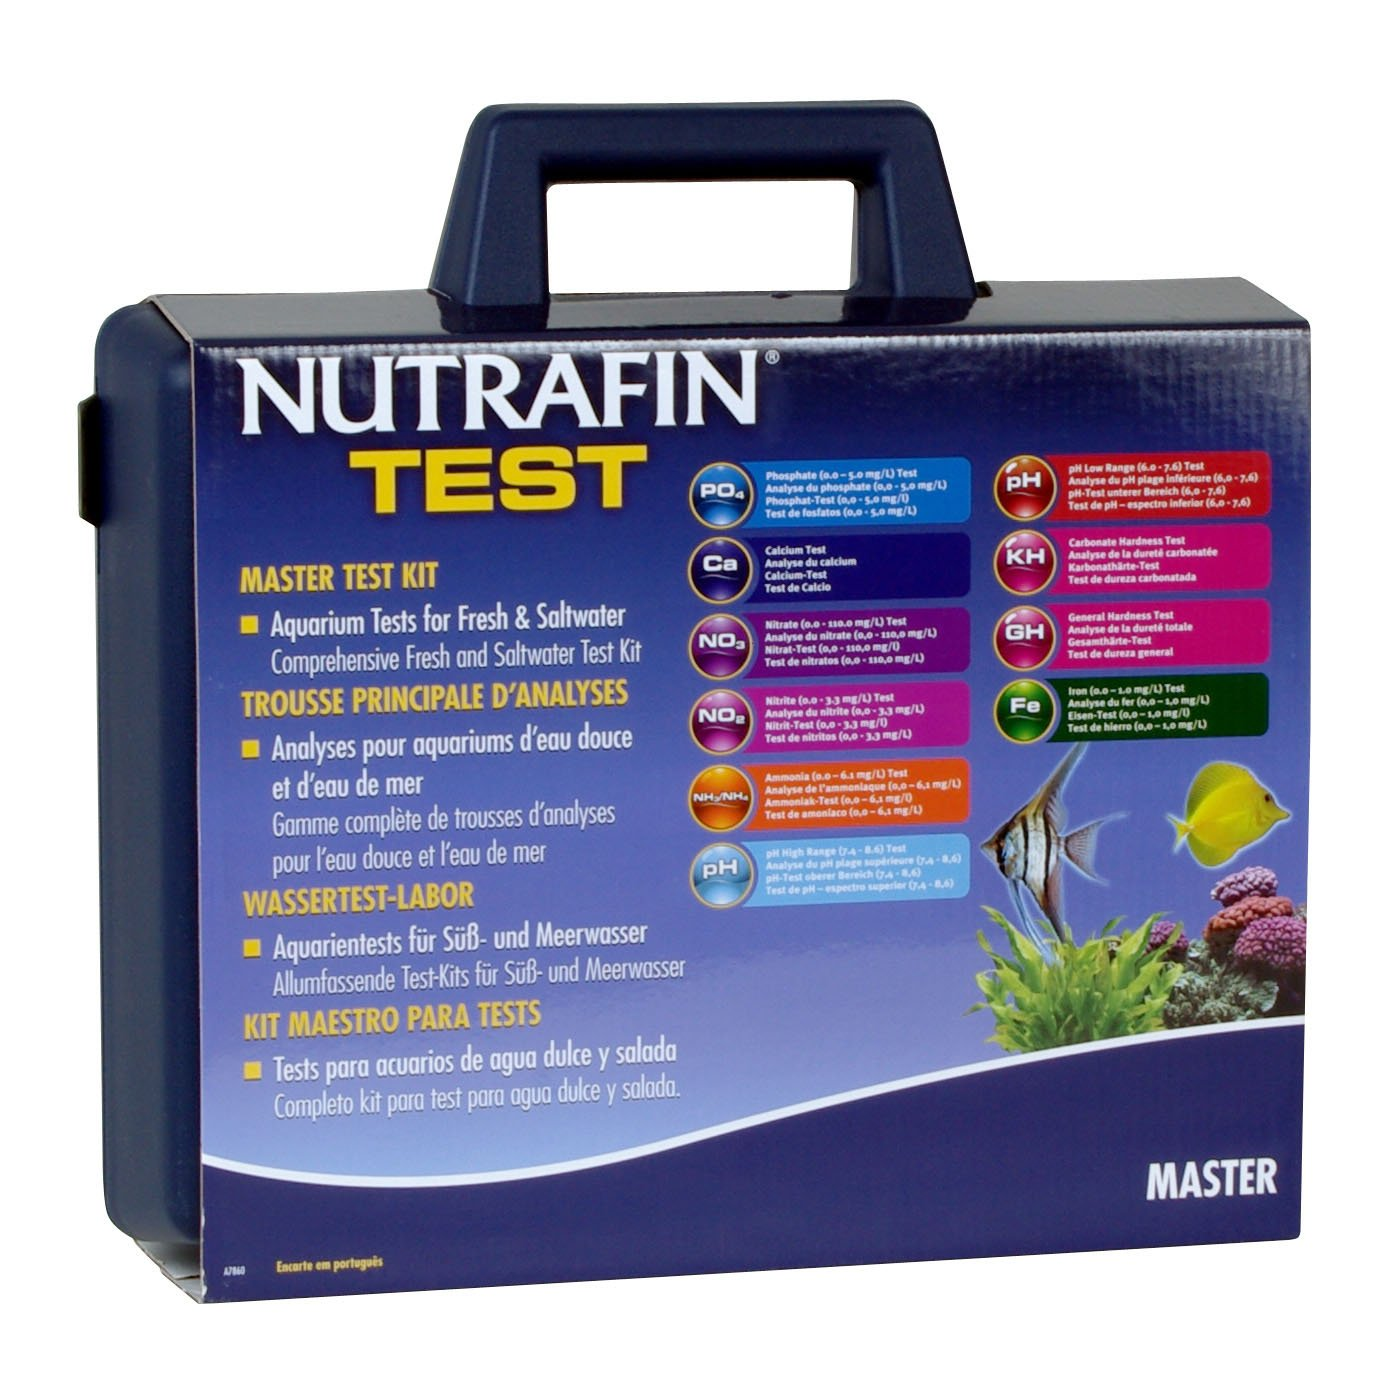 Nutrafin Master Test Kit, Contains 10 Test Parameters by Nutrafin